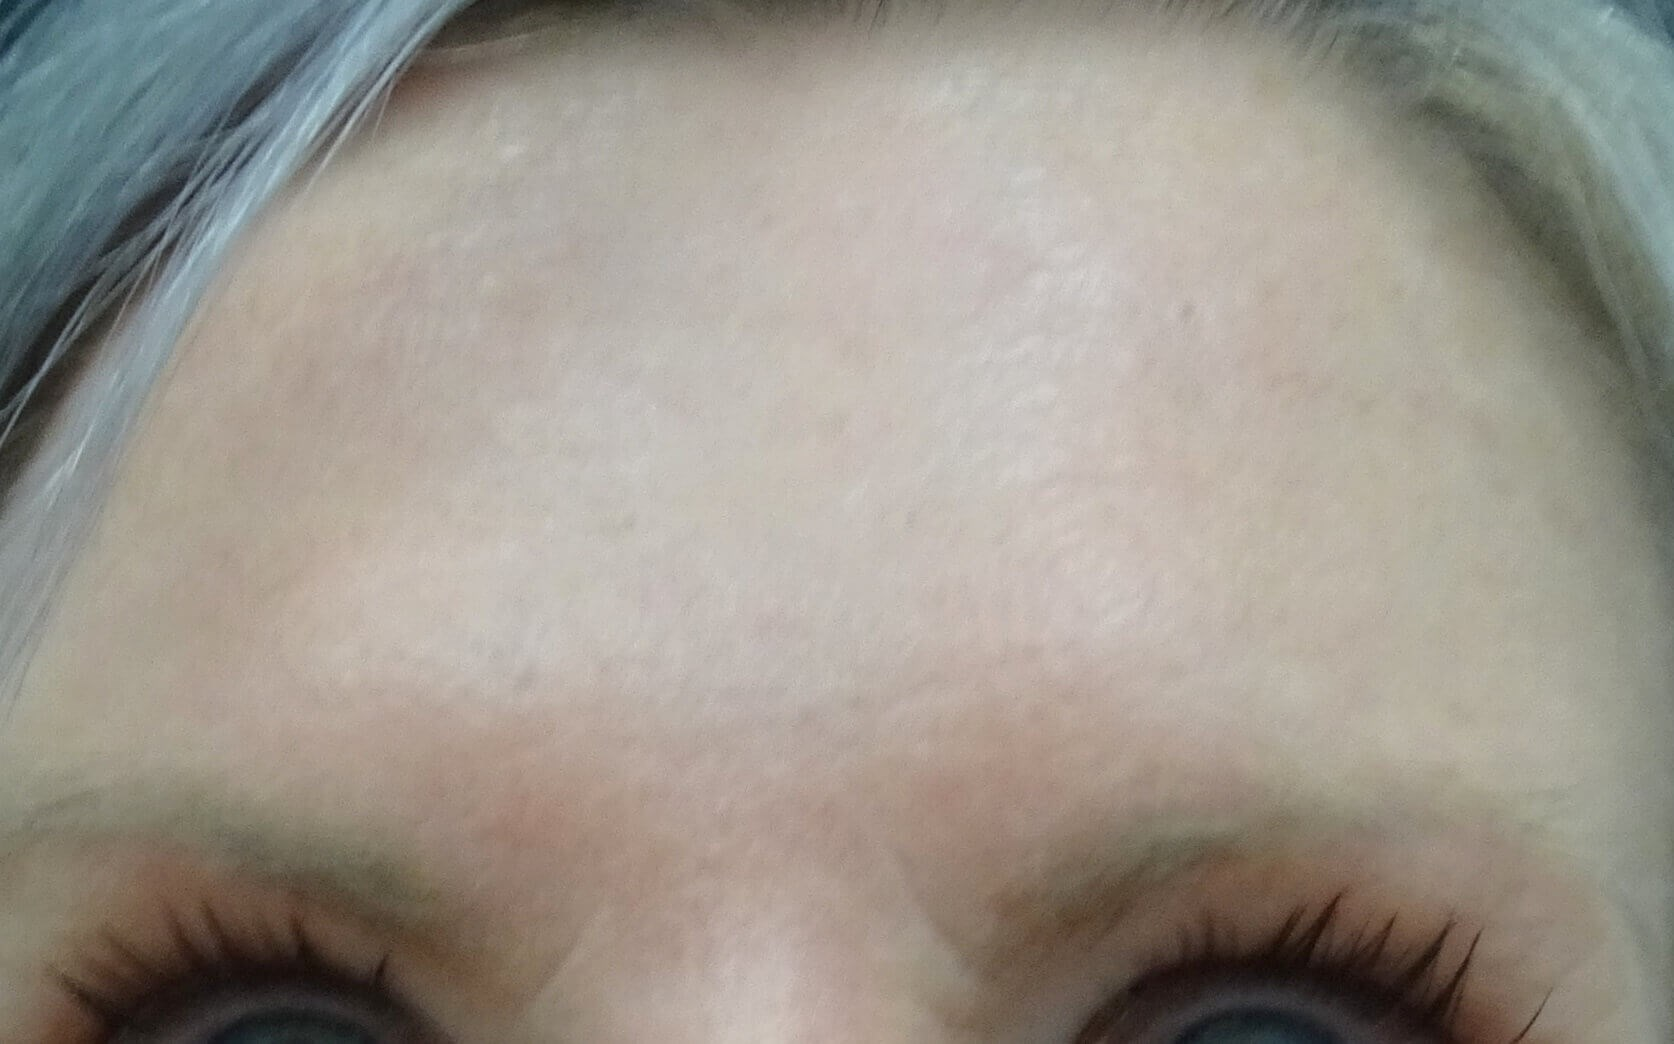 Botox for Forehead Wrinkles After Botox & Dr. Lee